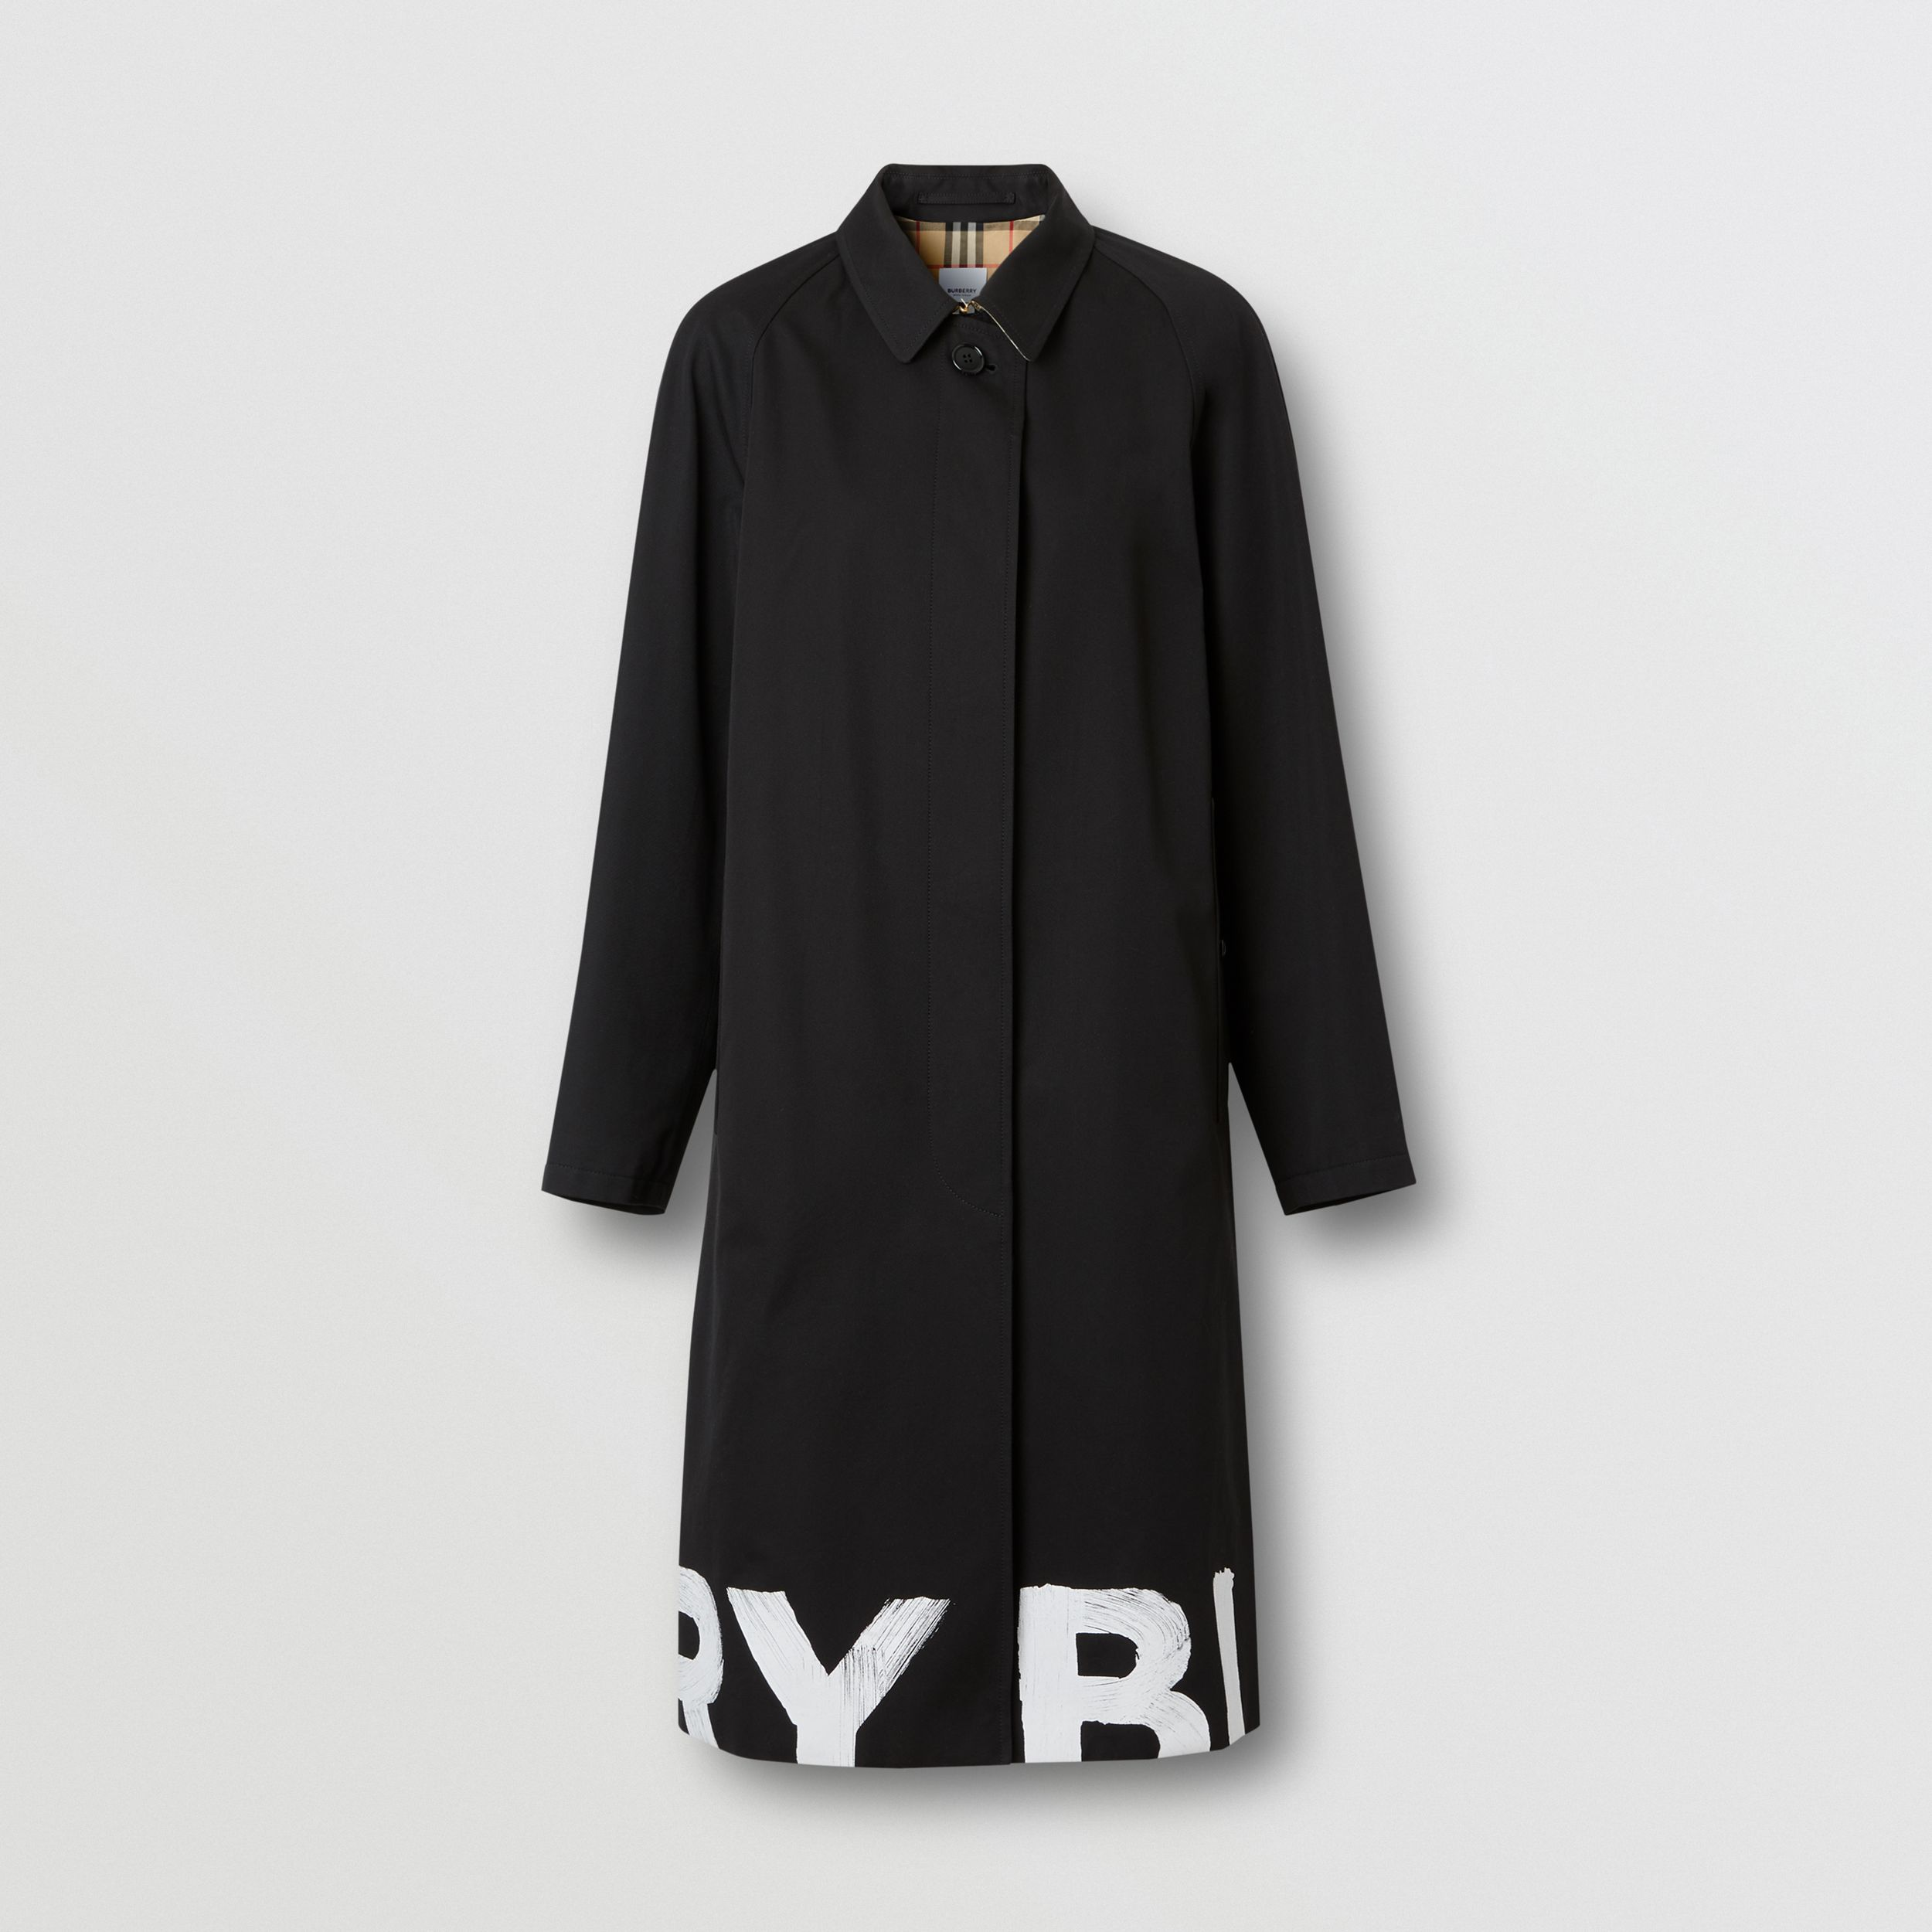 Logo Print Cotton Gabardine Car Coat in Black - Women | Burberry - 4